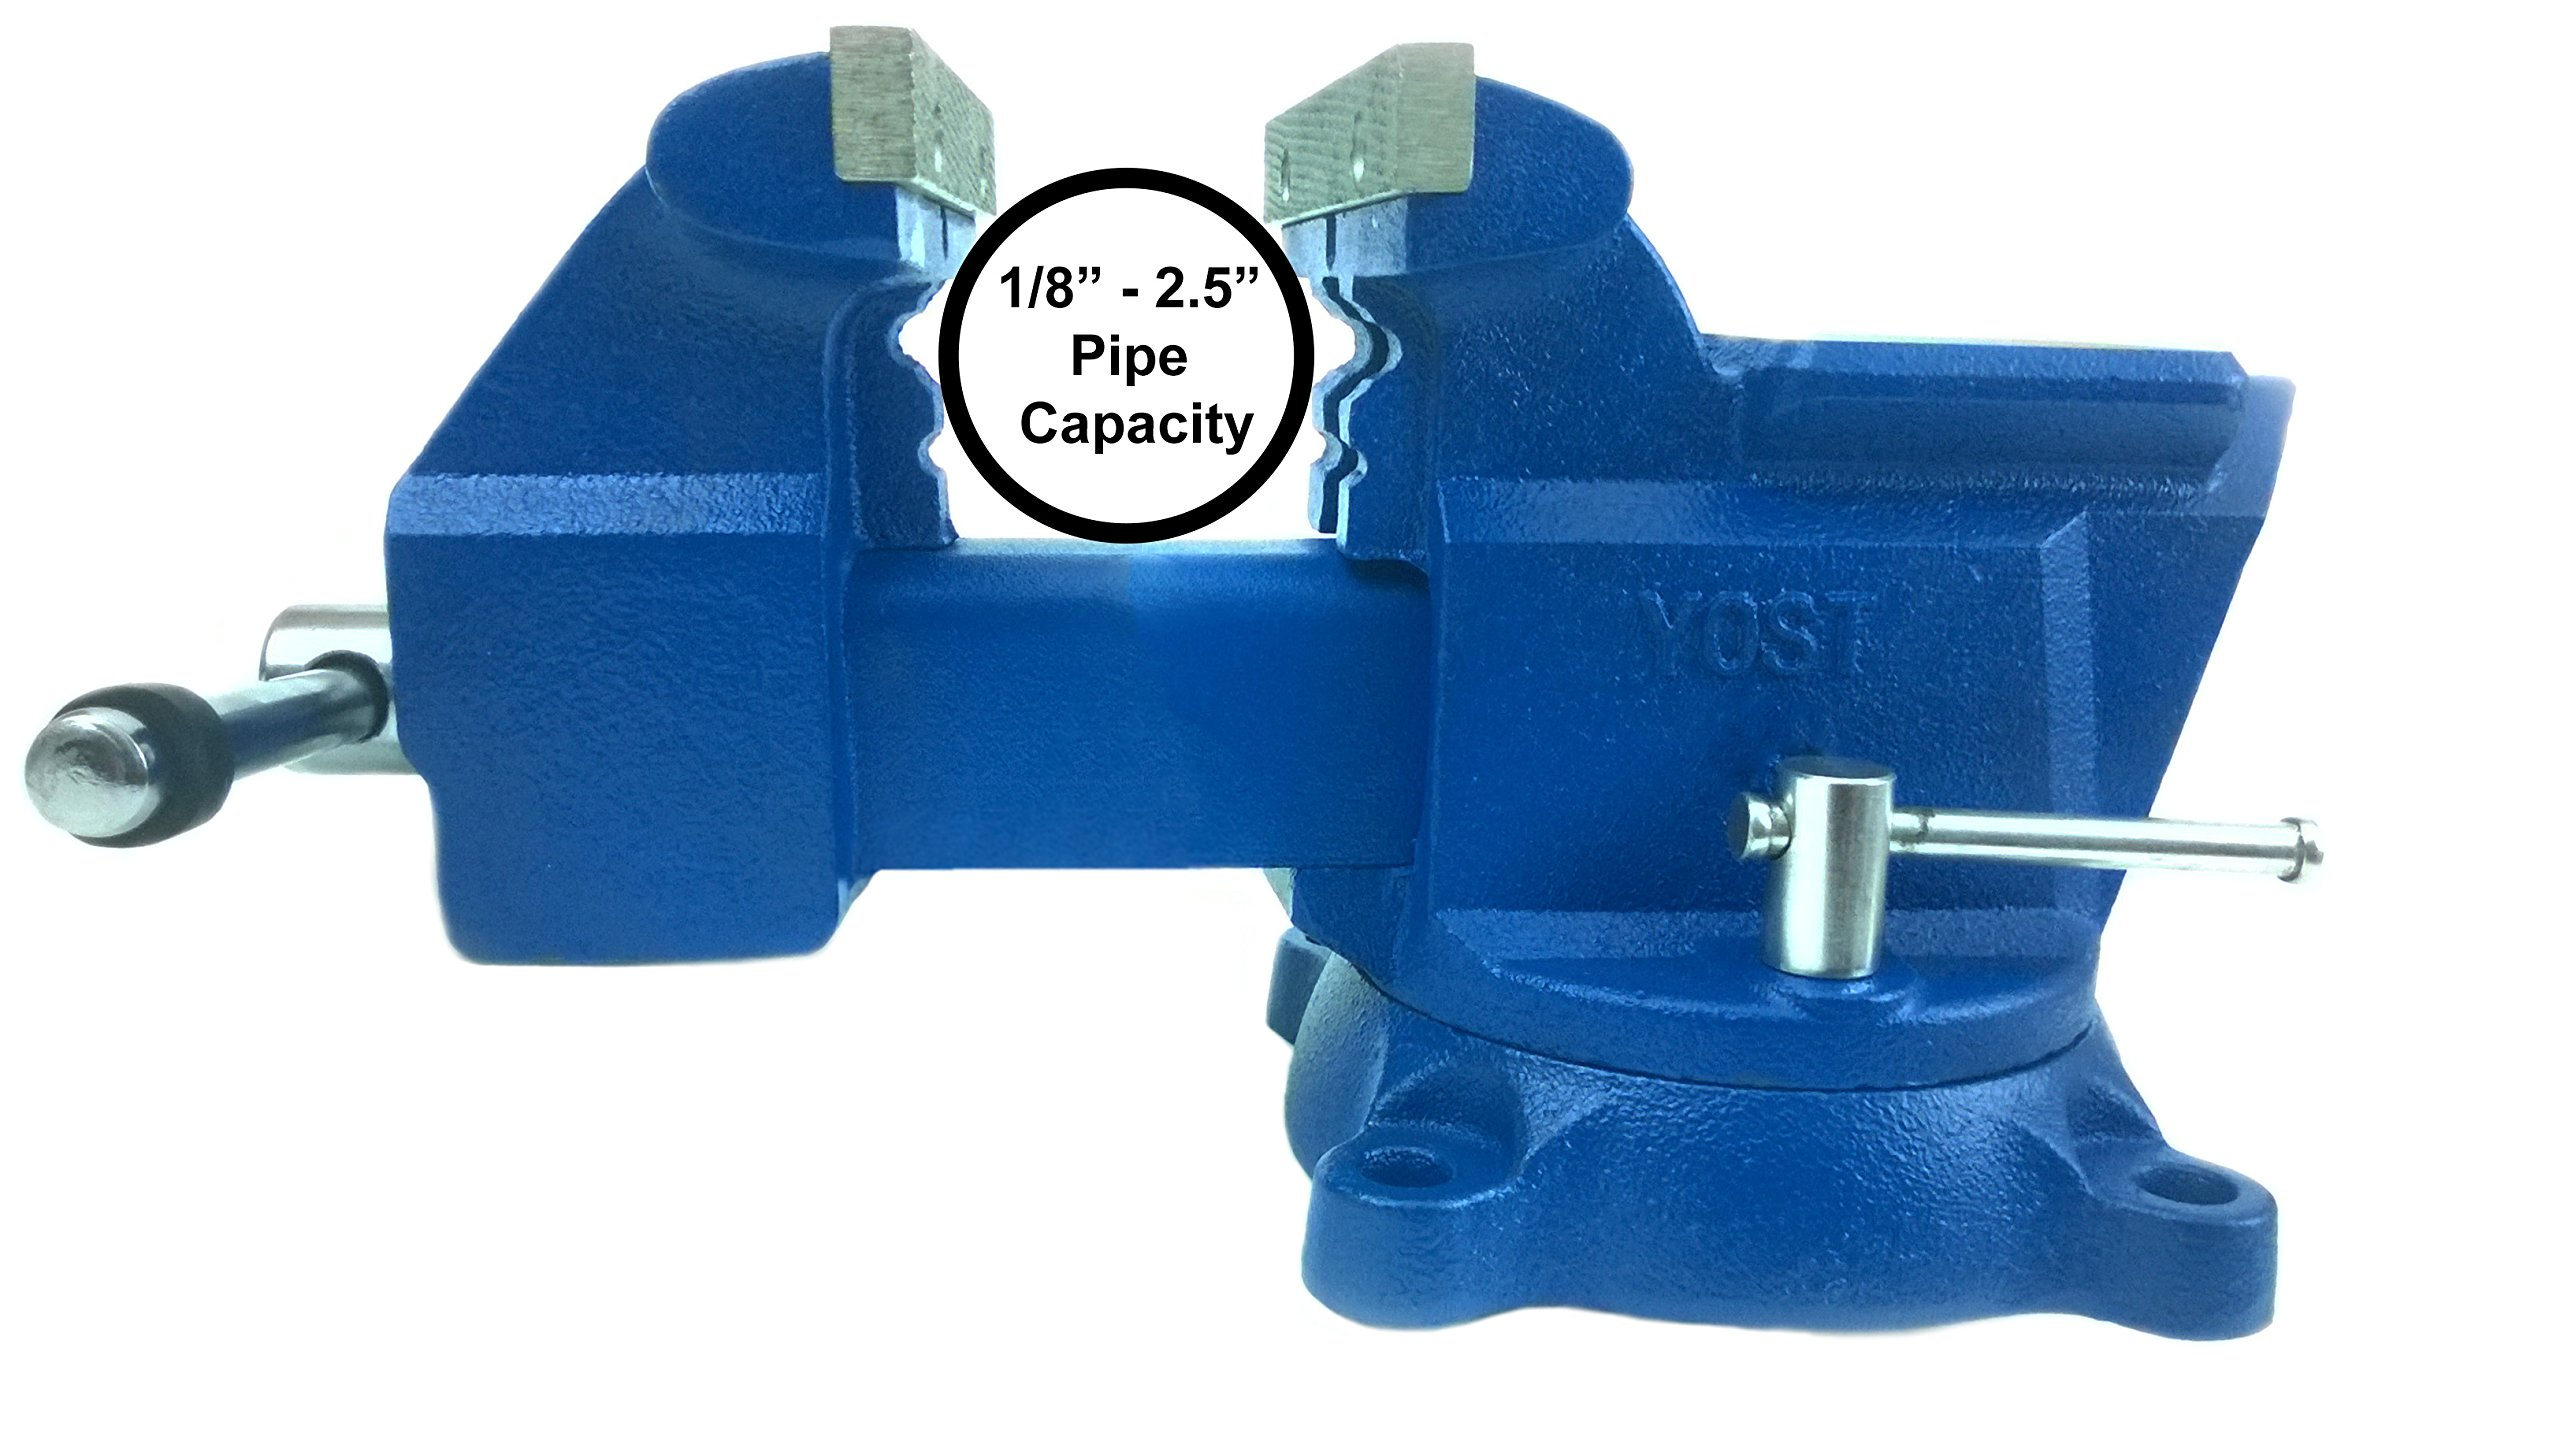 Yost Vises 465 6.5'' Combination Pipe and Bench Vise by Yost Tools (Image #5)